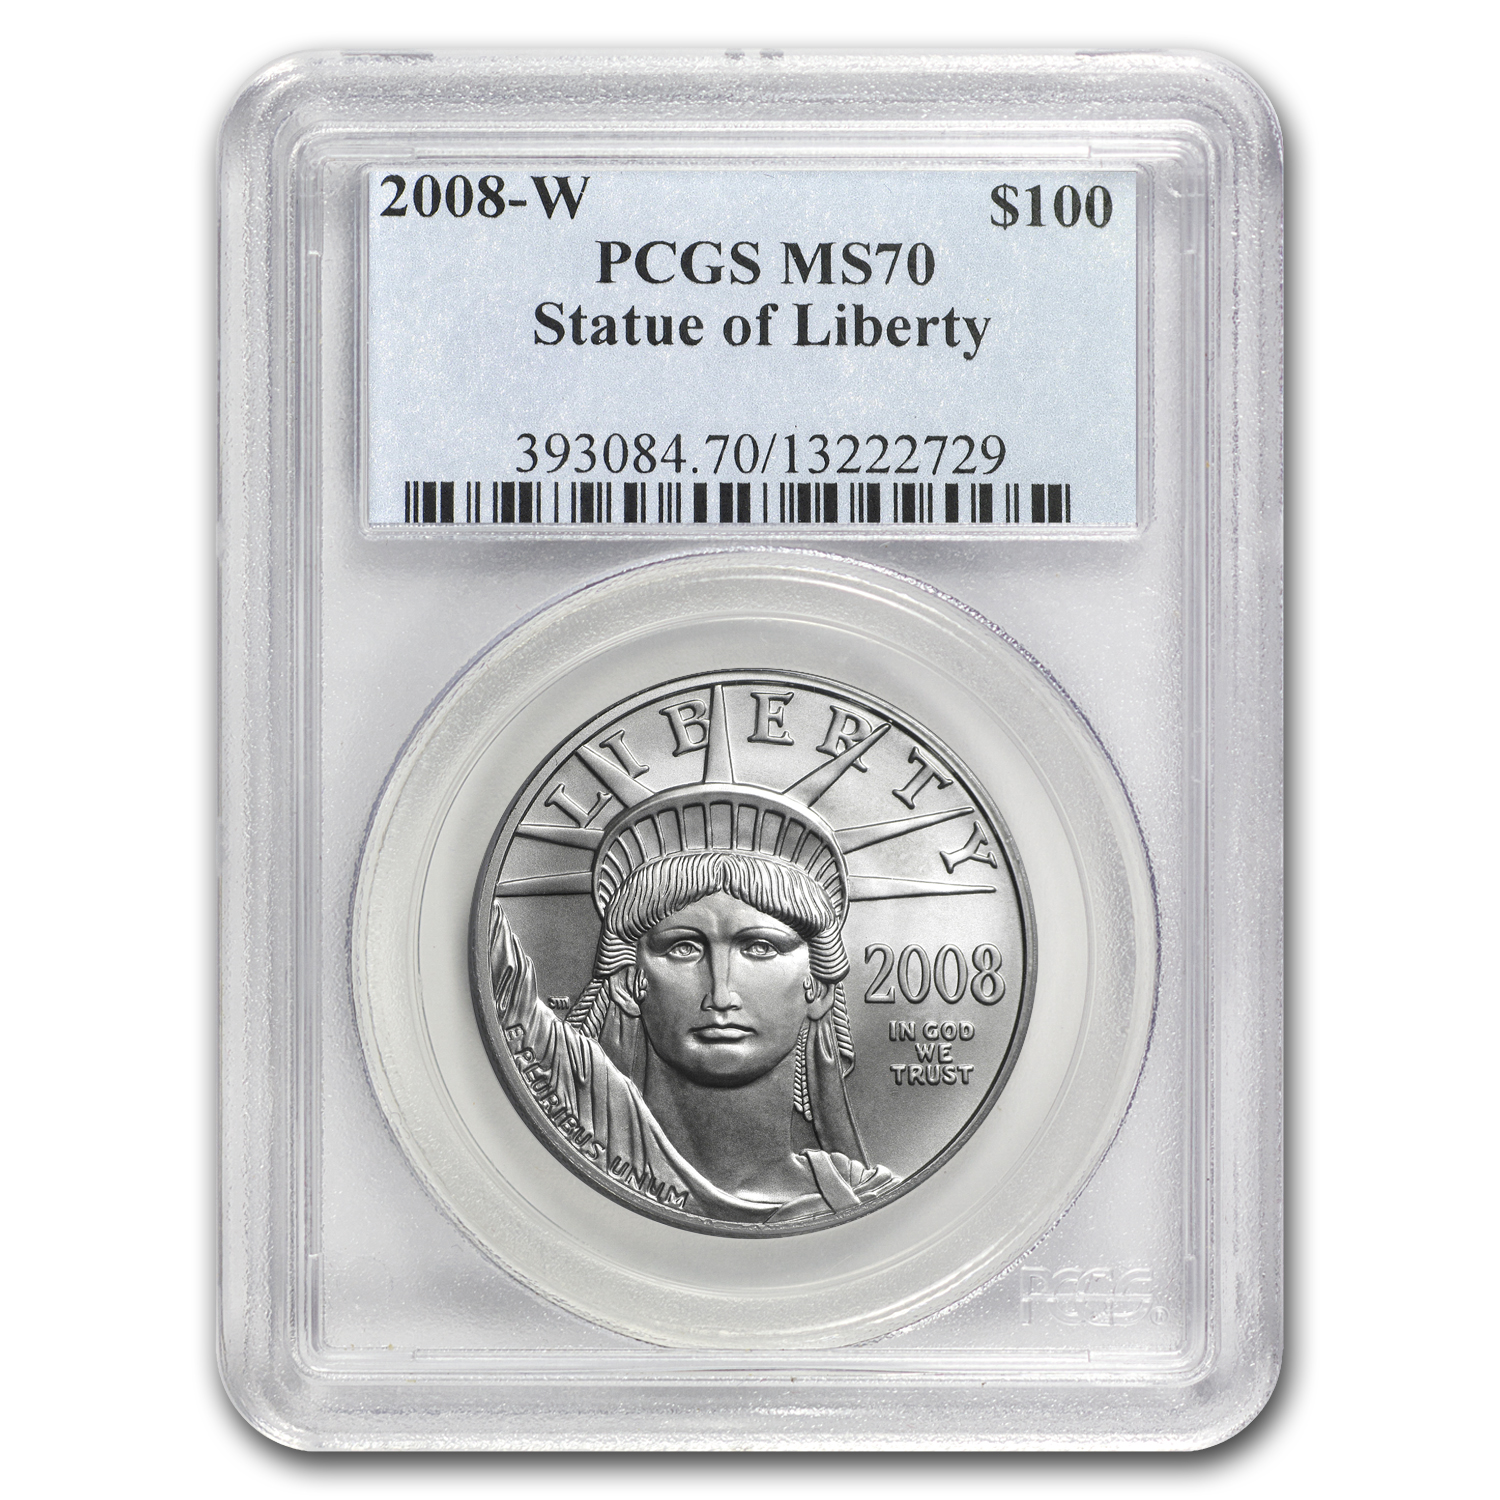 2008-W 1 oz Burnished Platinum American Eagle MS-70 PCGS